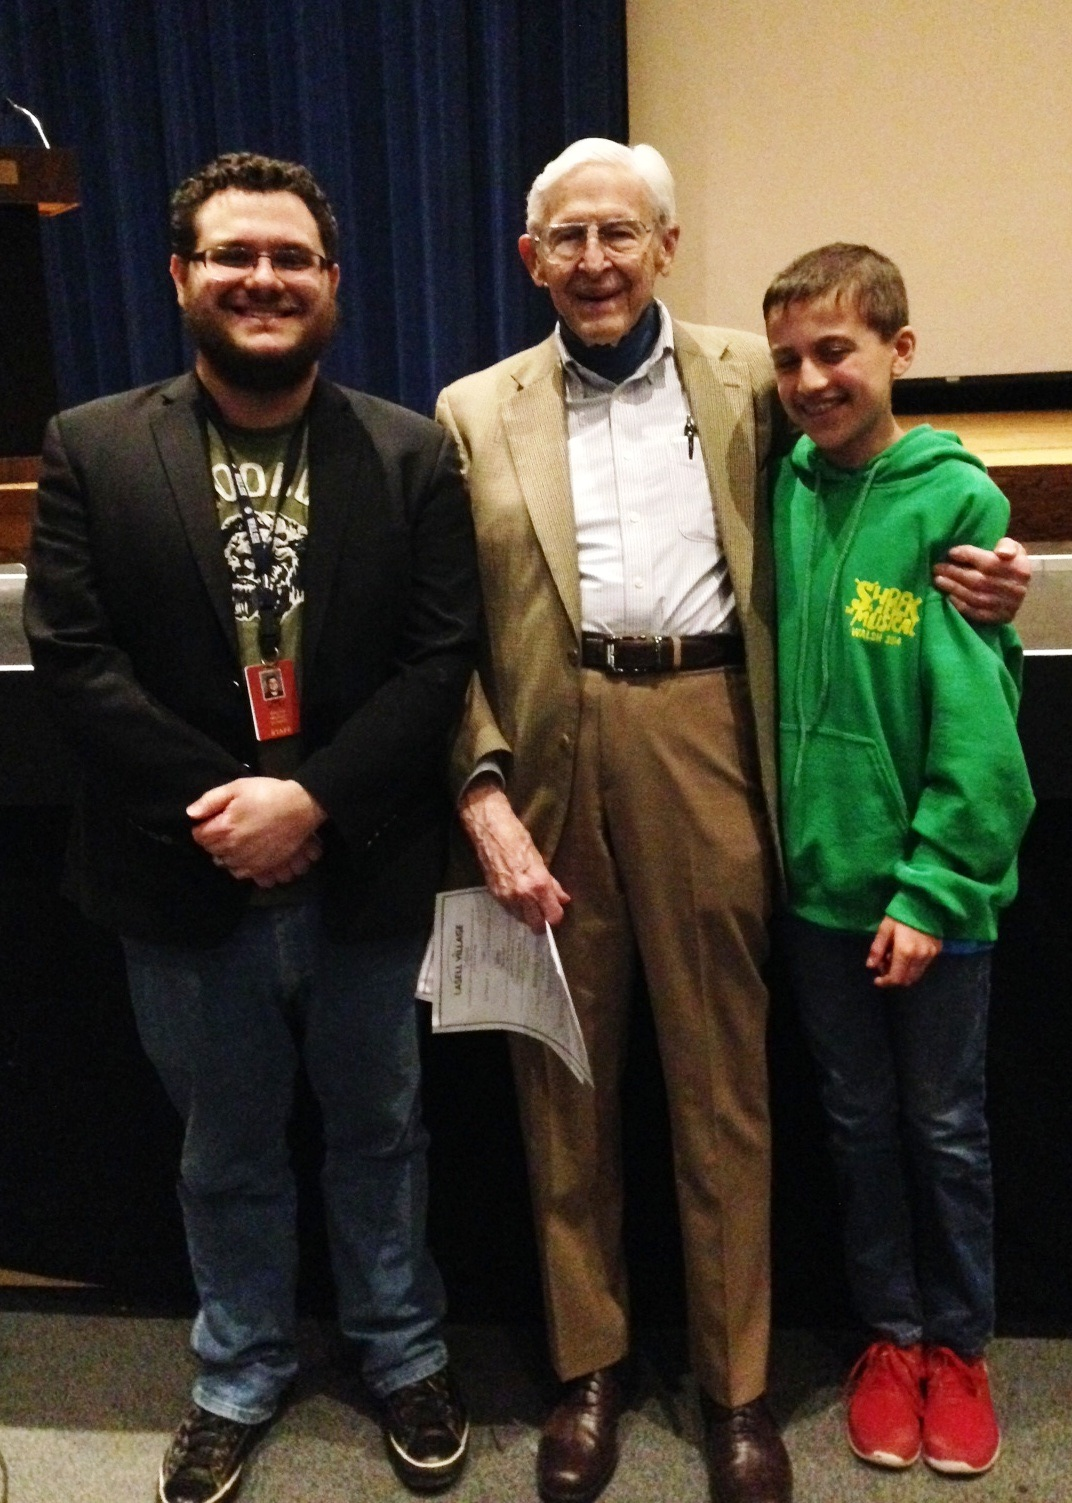 Max Michelson Shares WWII Experience with Middle Schoolers